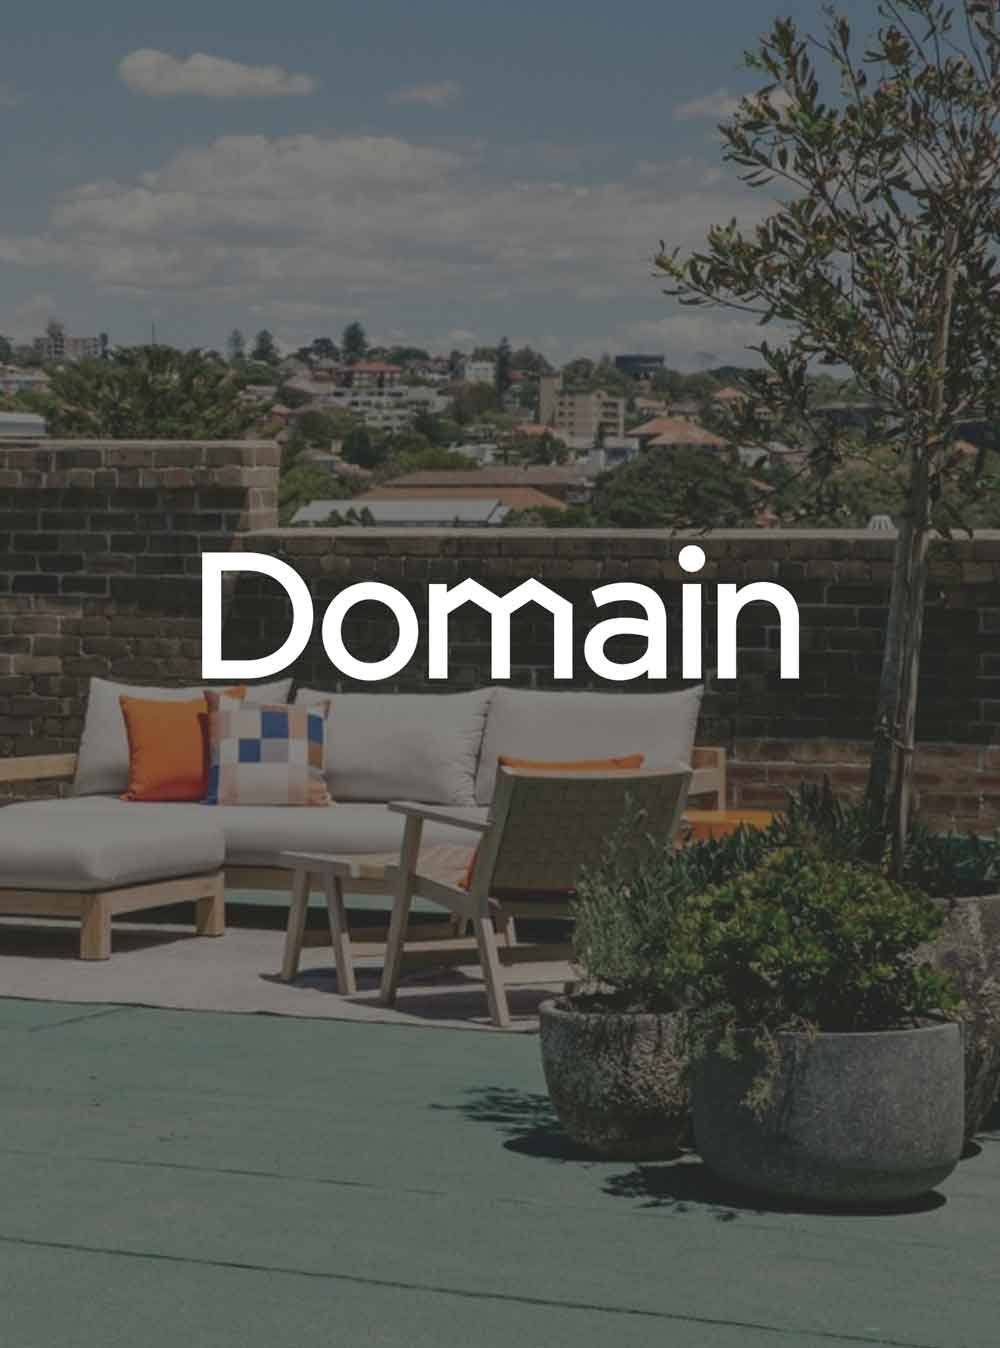 Domain - 'Just because you rent doesn't mean you can't get into gardening'Dec, 2017